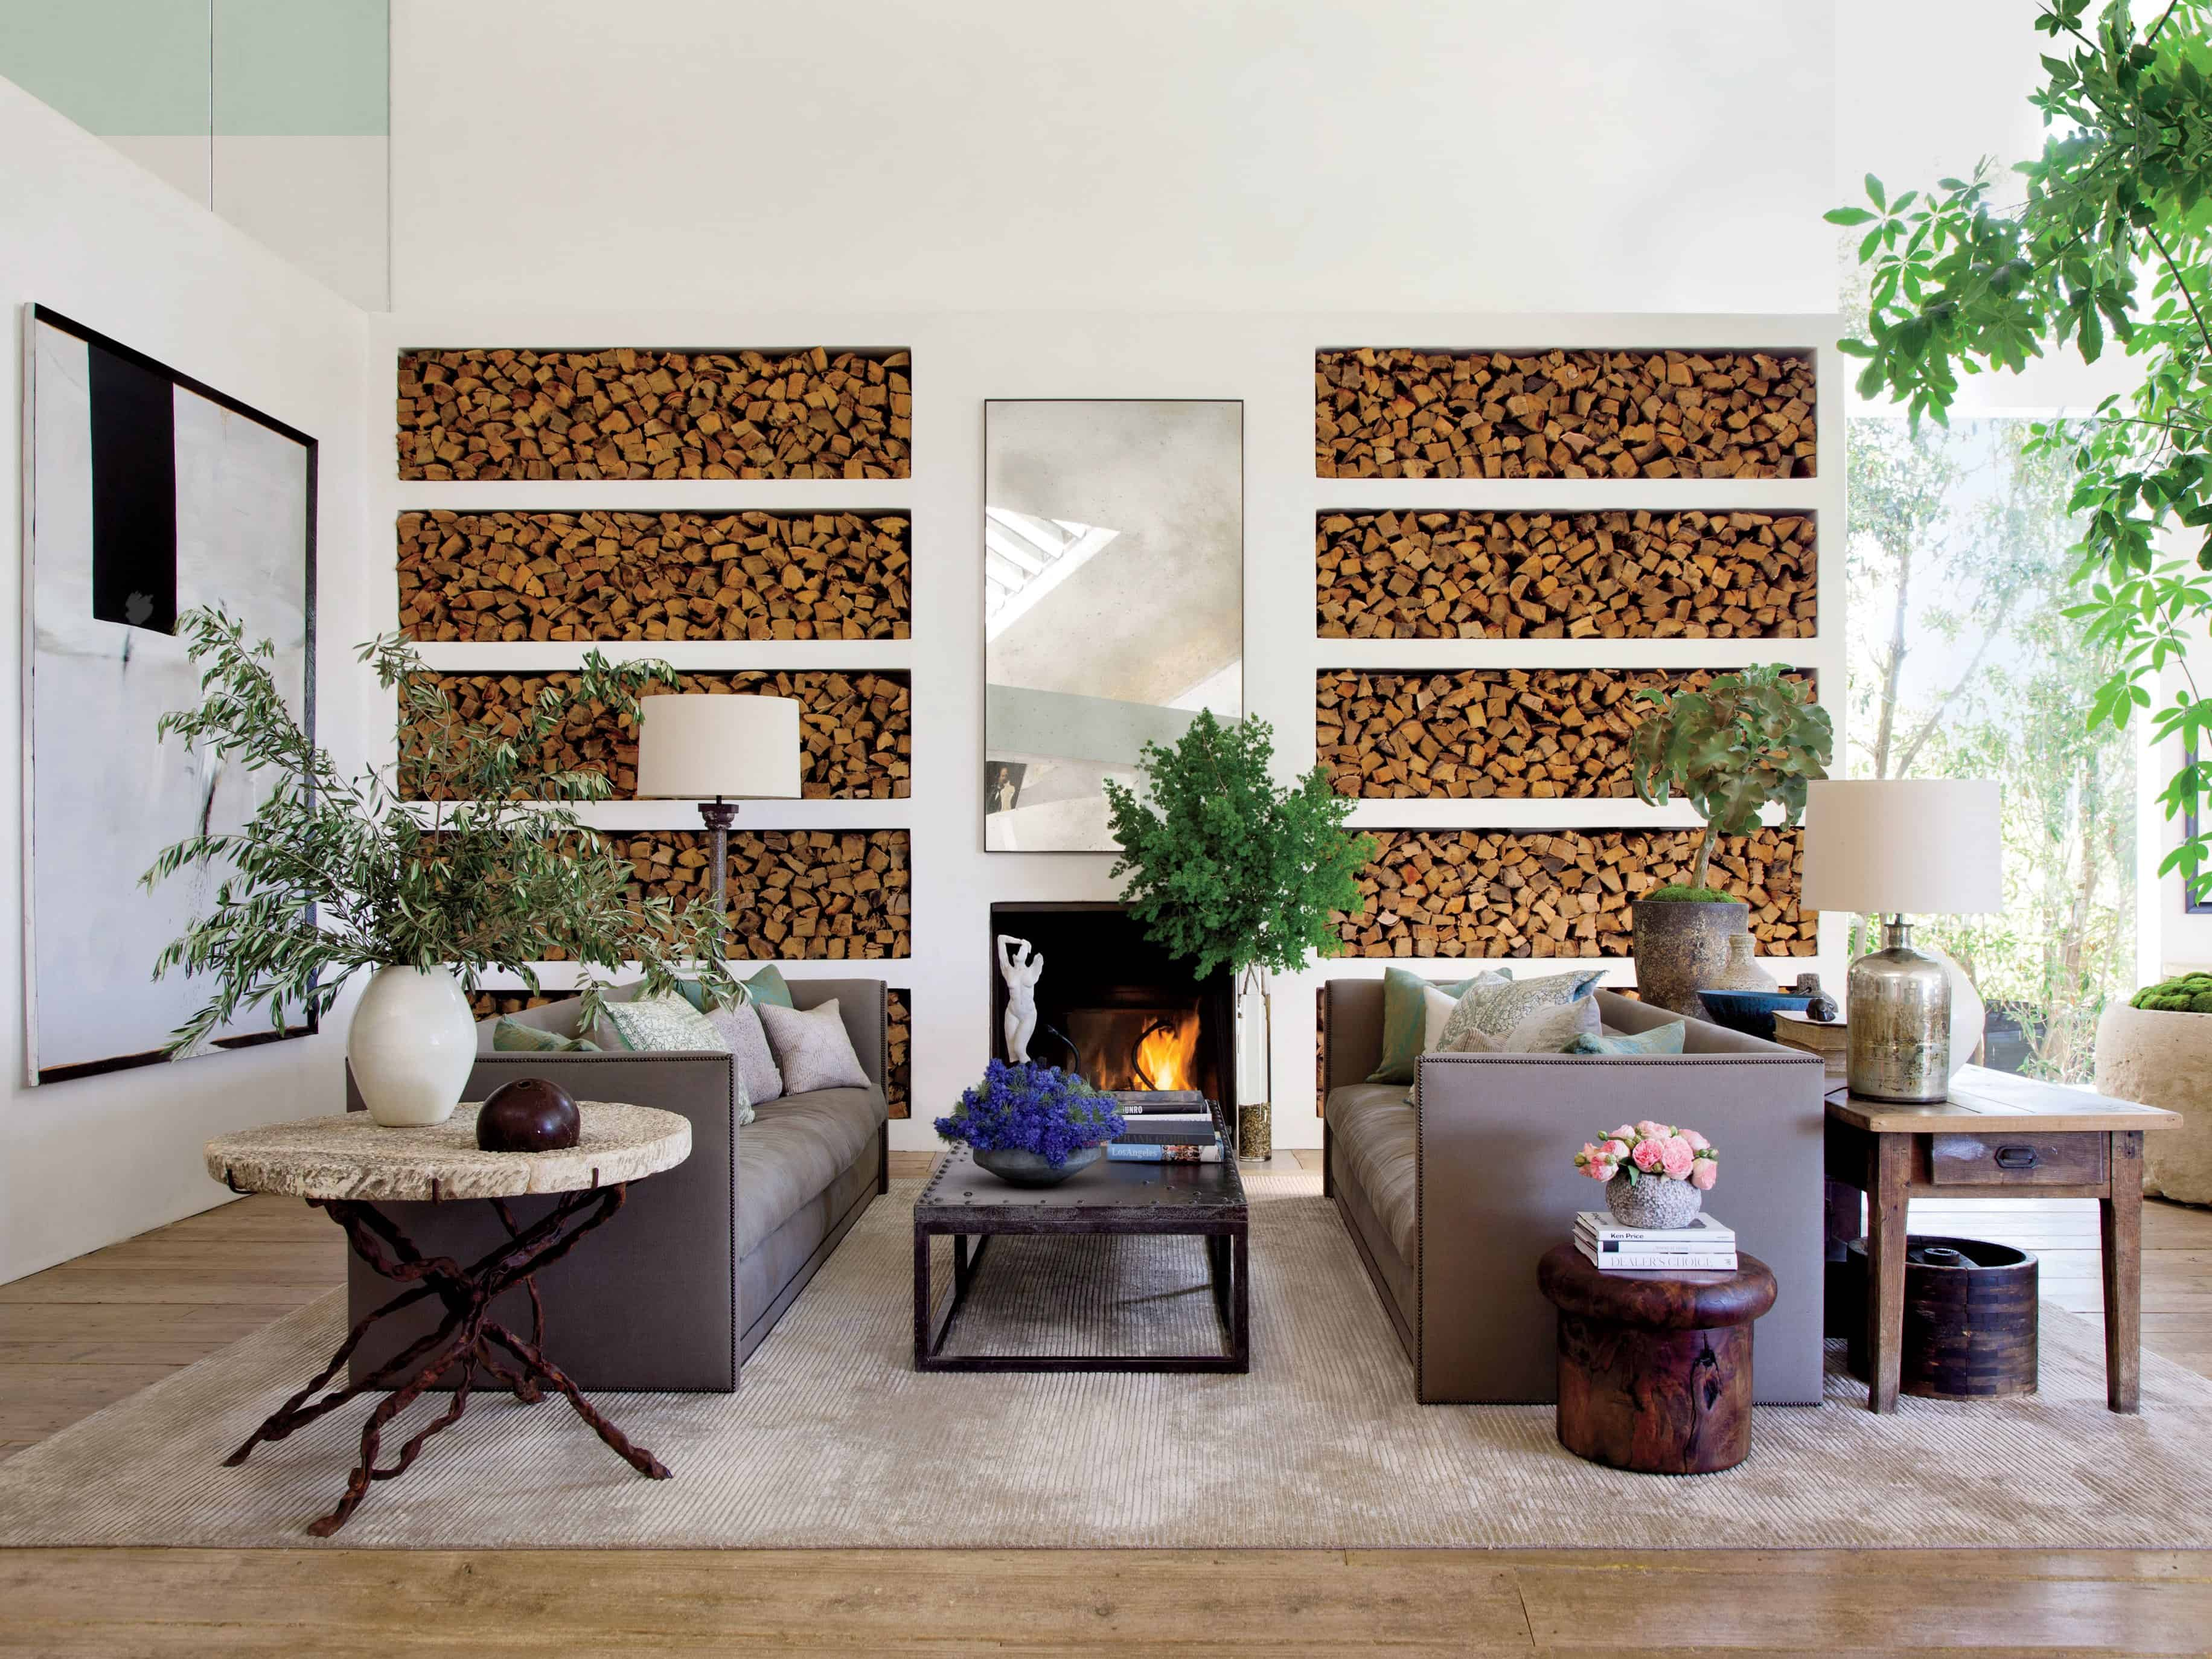 grand fireplace with decor behind